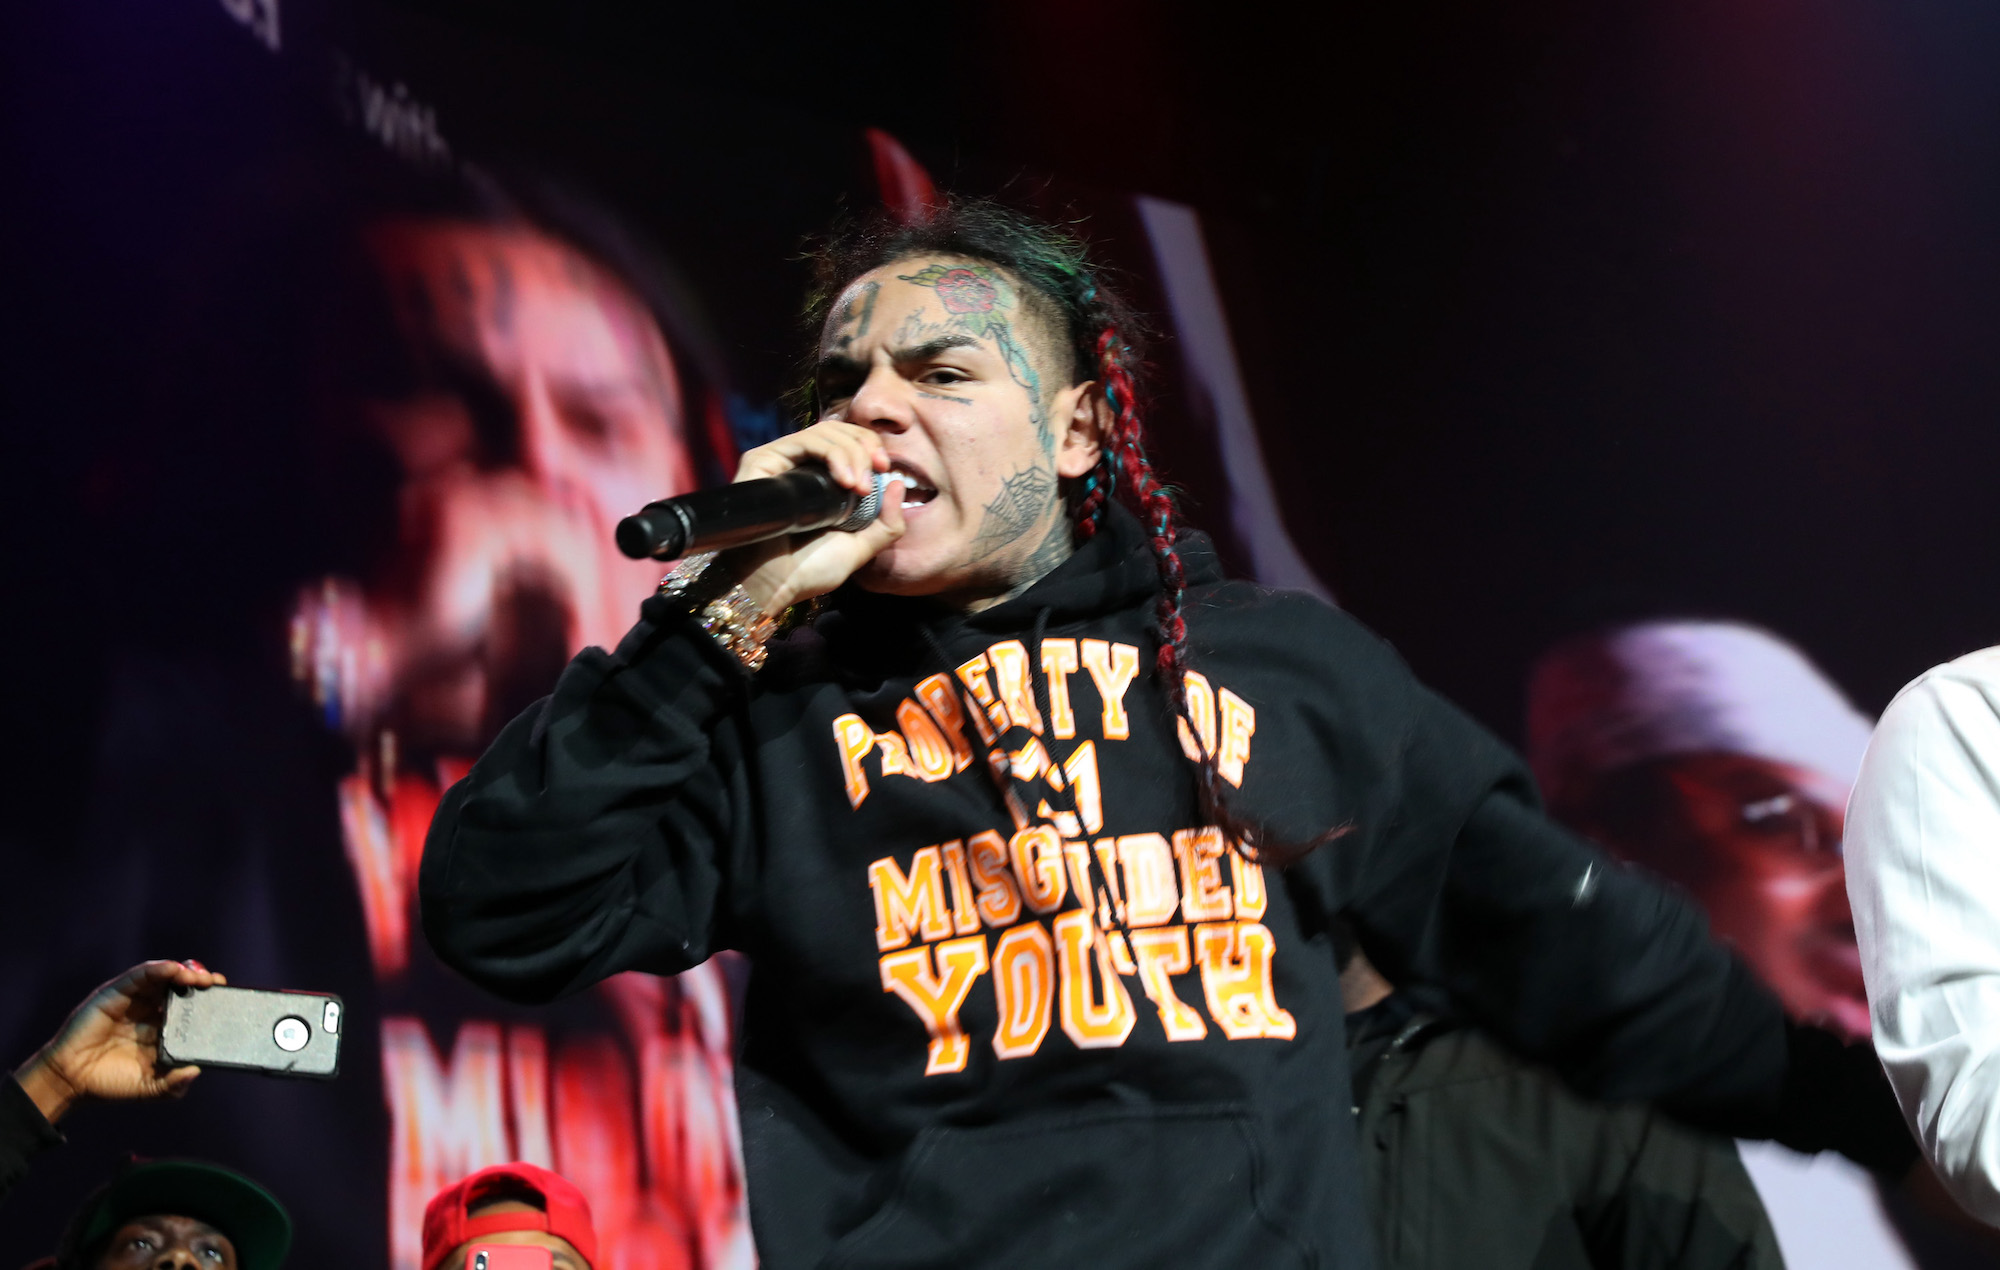 Tekashi 6ix9ine's Spotify page hacked and edited with NSFW content